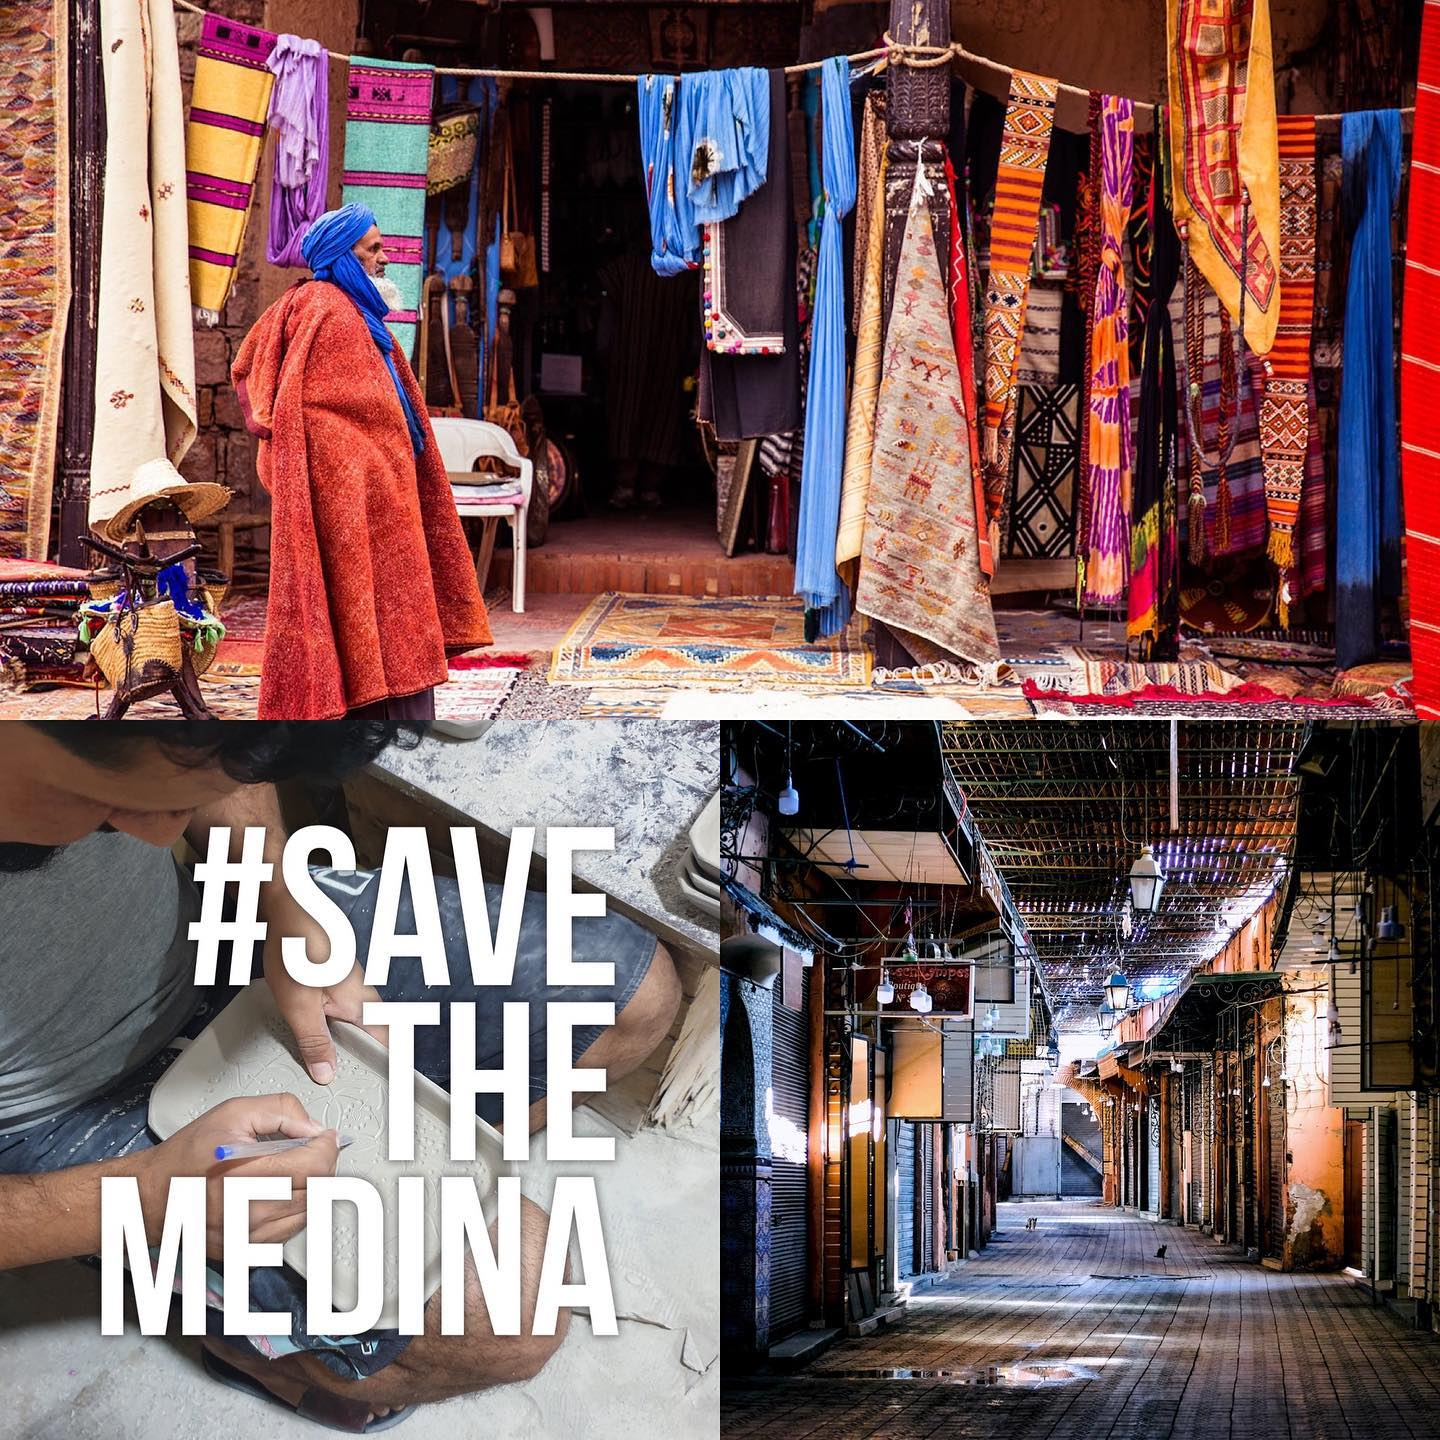 Image from @CharlieDailey and @Lailiazid / The Eve Branson Foundation #savethemedina